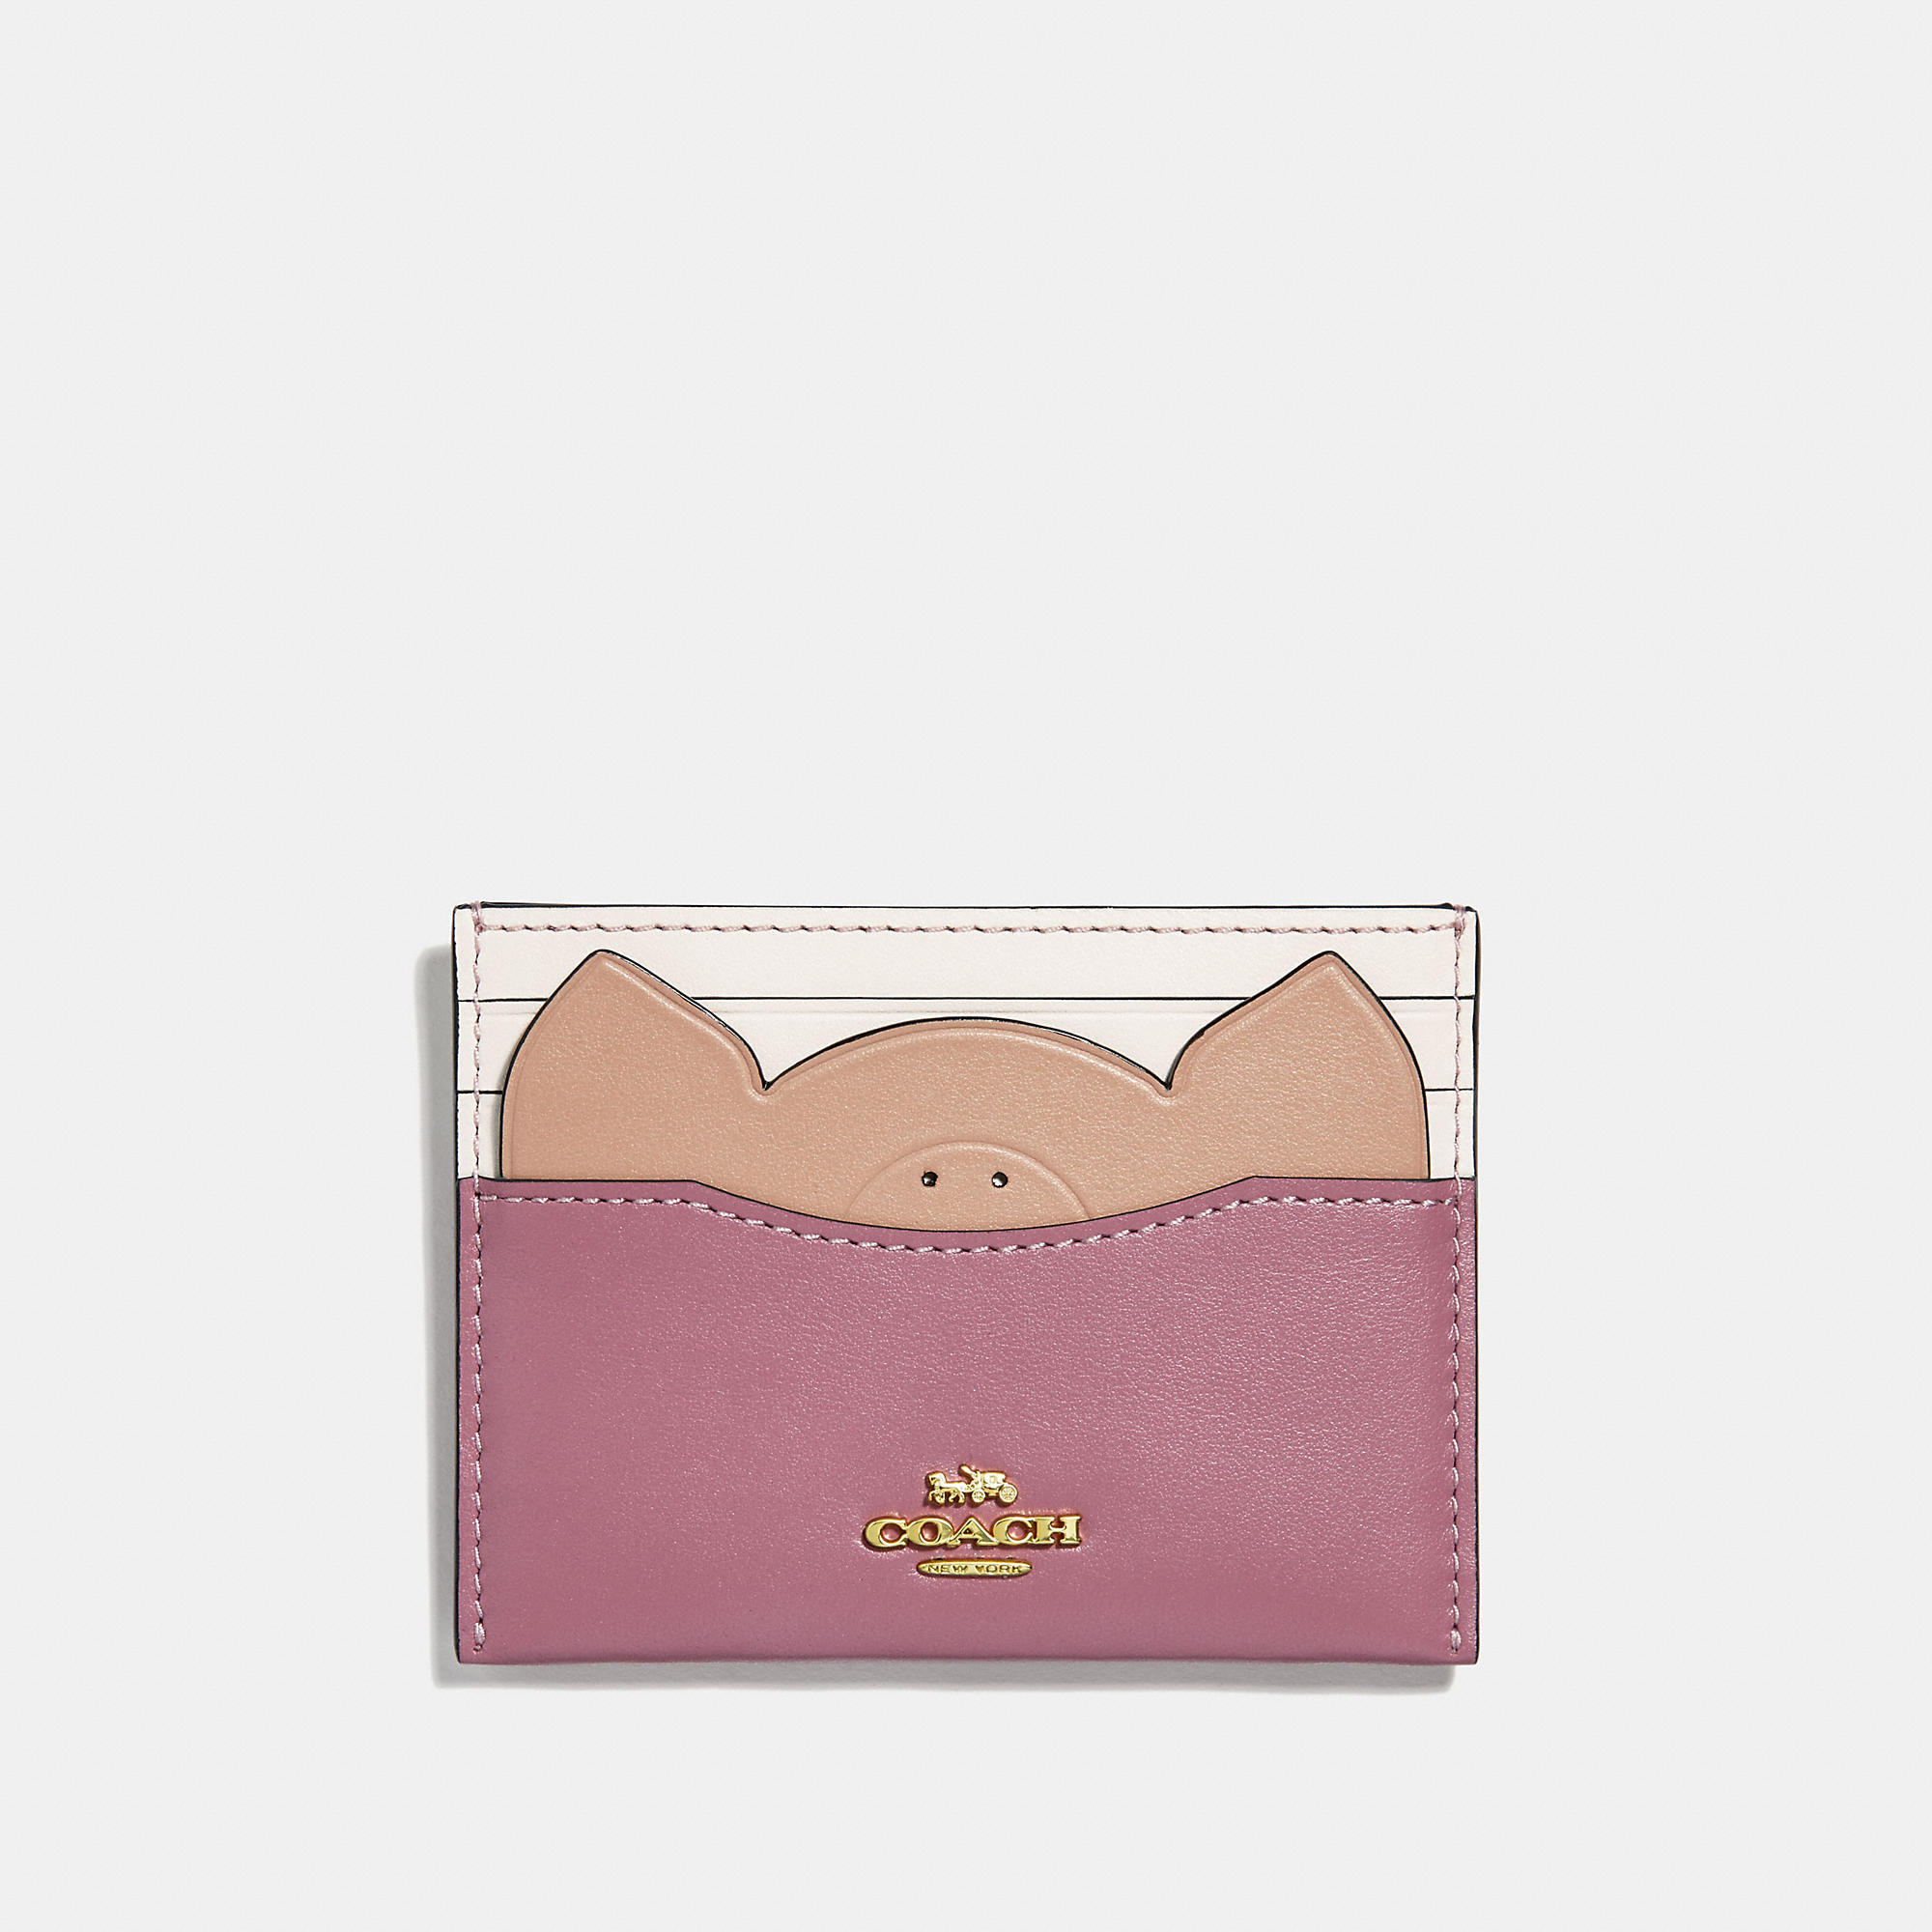 173c54eb5e COACH Card Case With Pig - Women's Cardholder in 2019 | Products ...